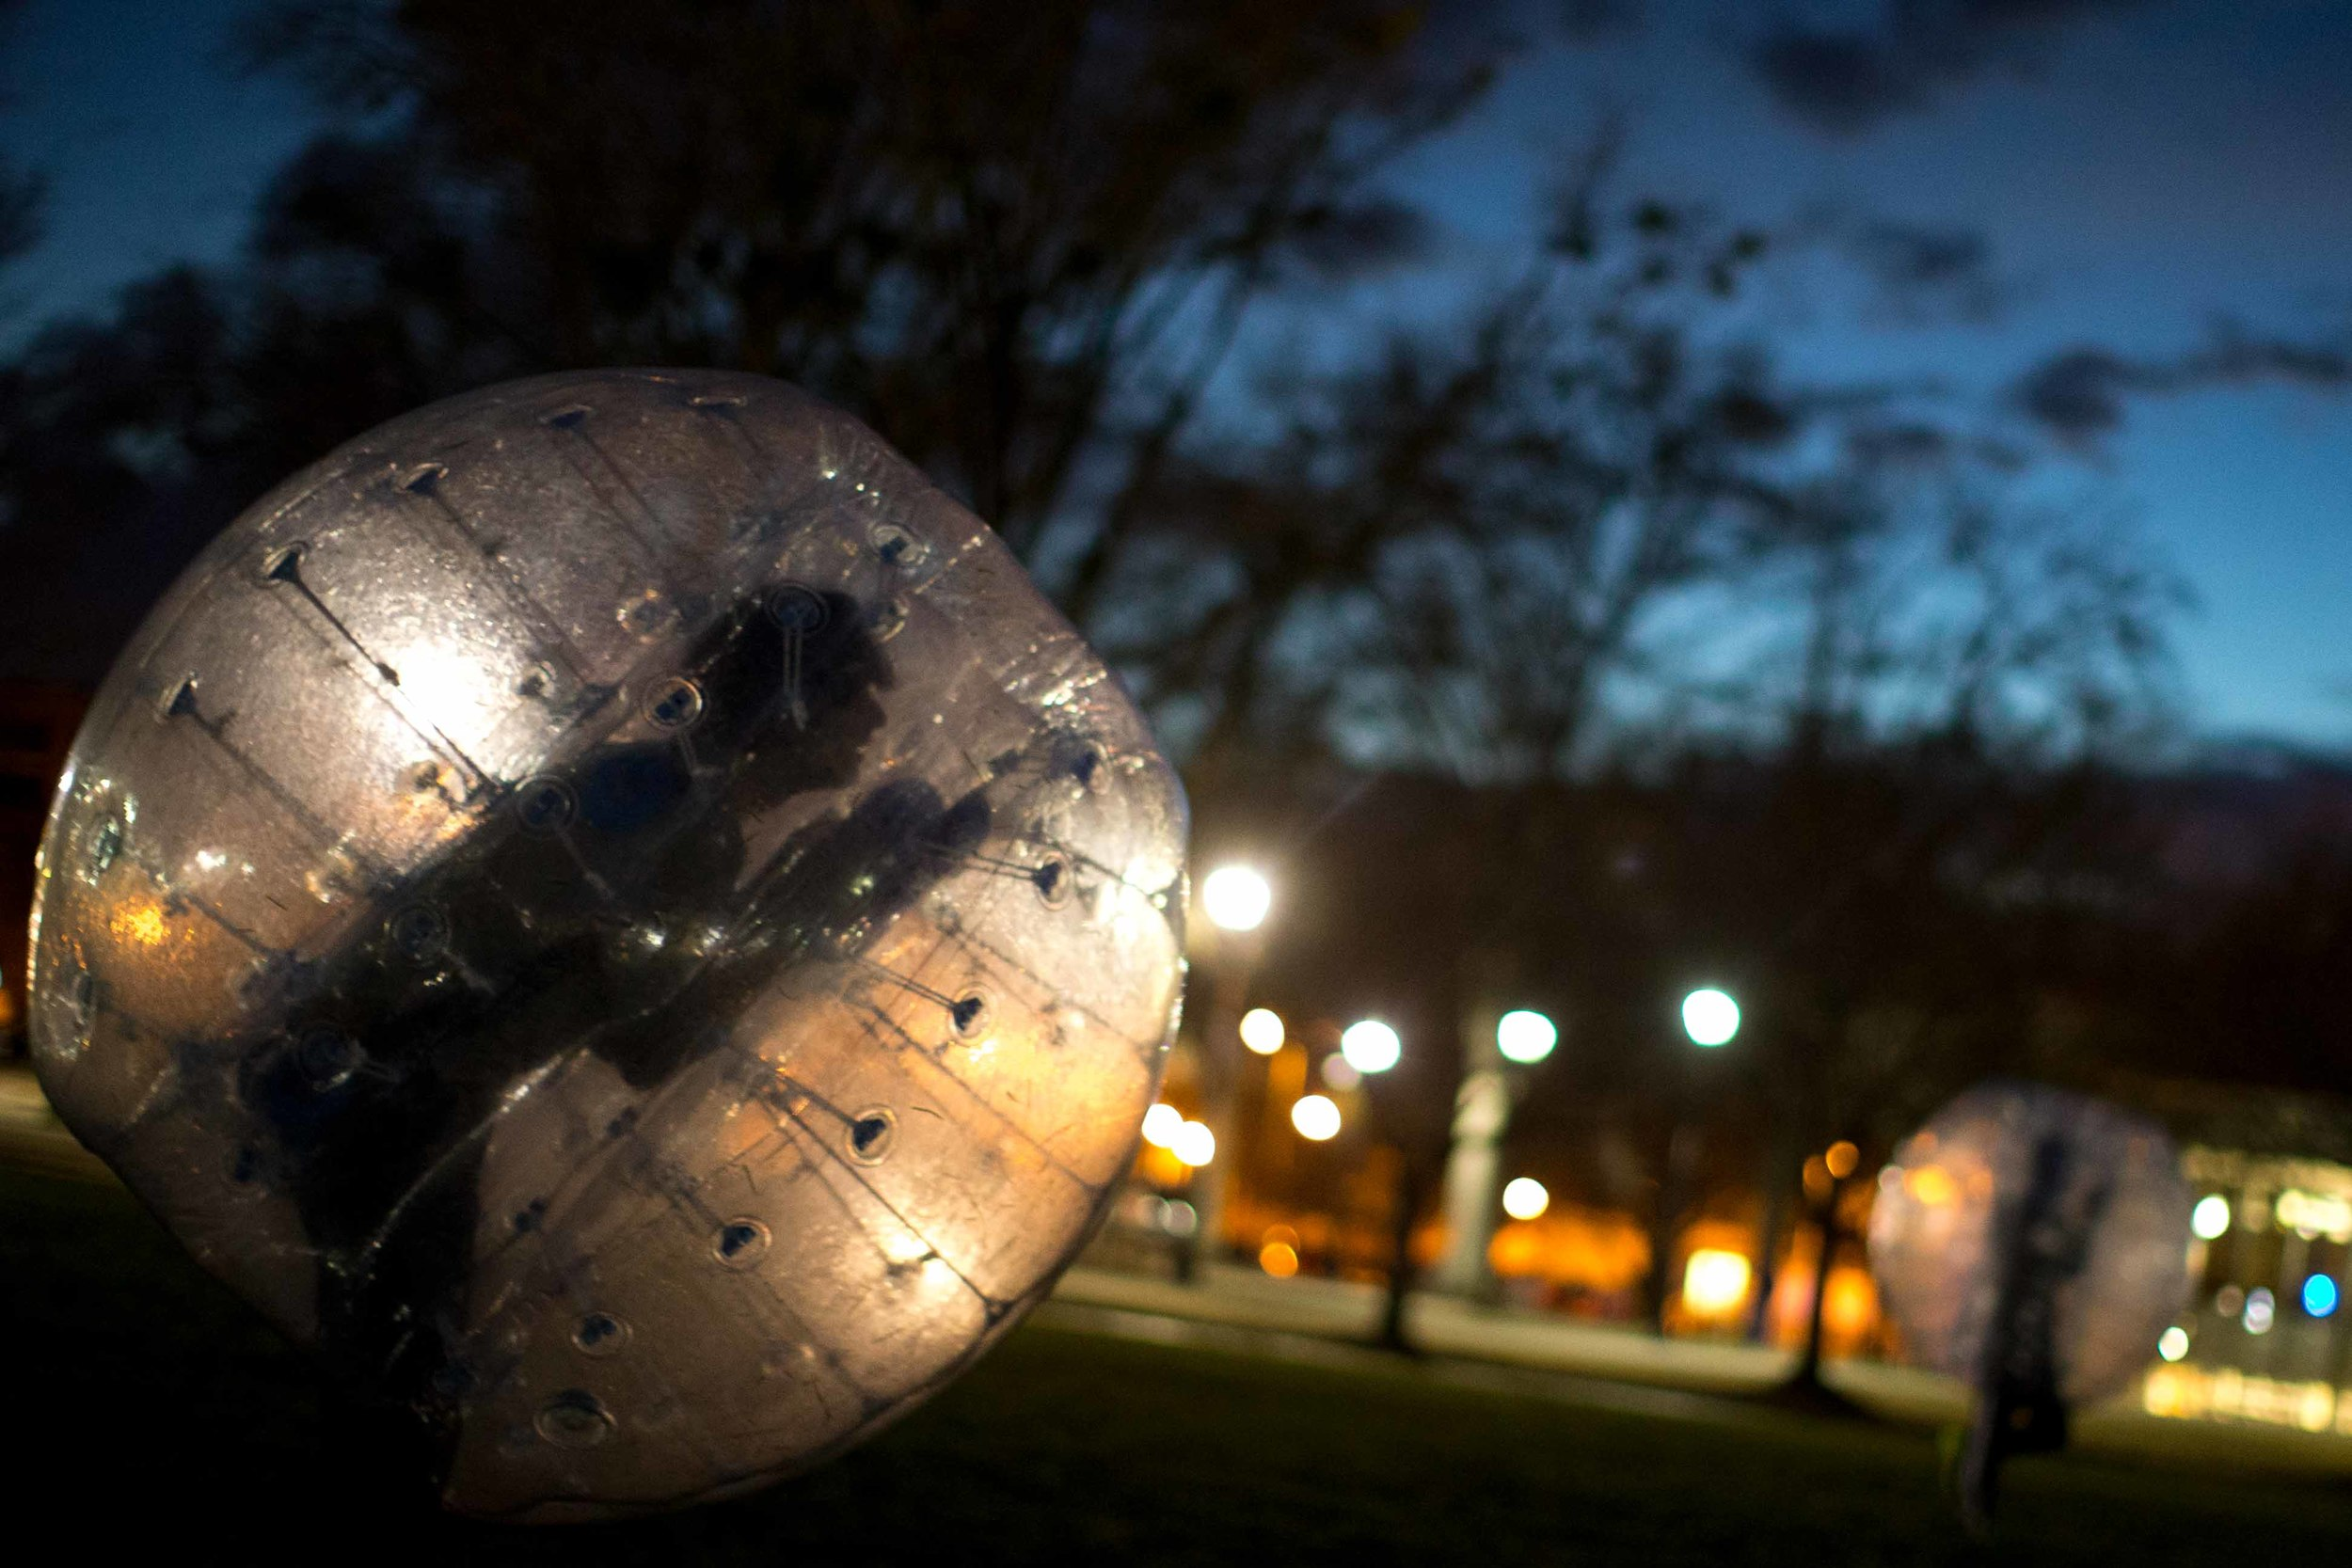 Kennesaw State University students play a game of bubble soccer on campus at sunset, Thursday, Jan. 28, 2016, in Kennesaw, Ga. (AP Photo/Branden Camp)